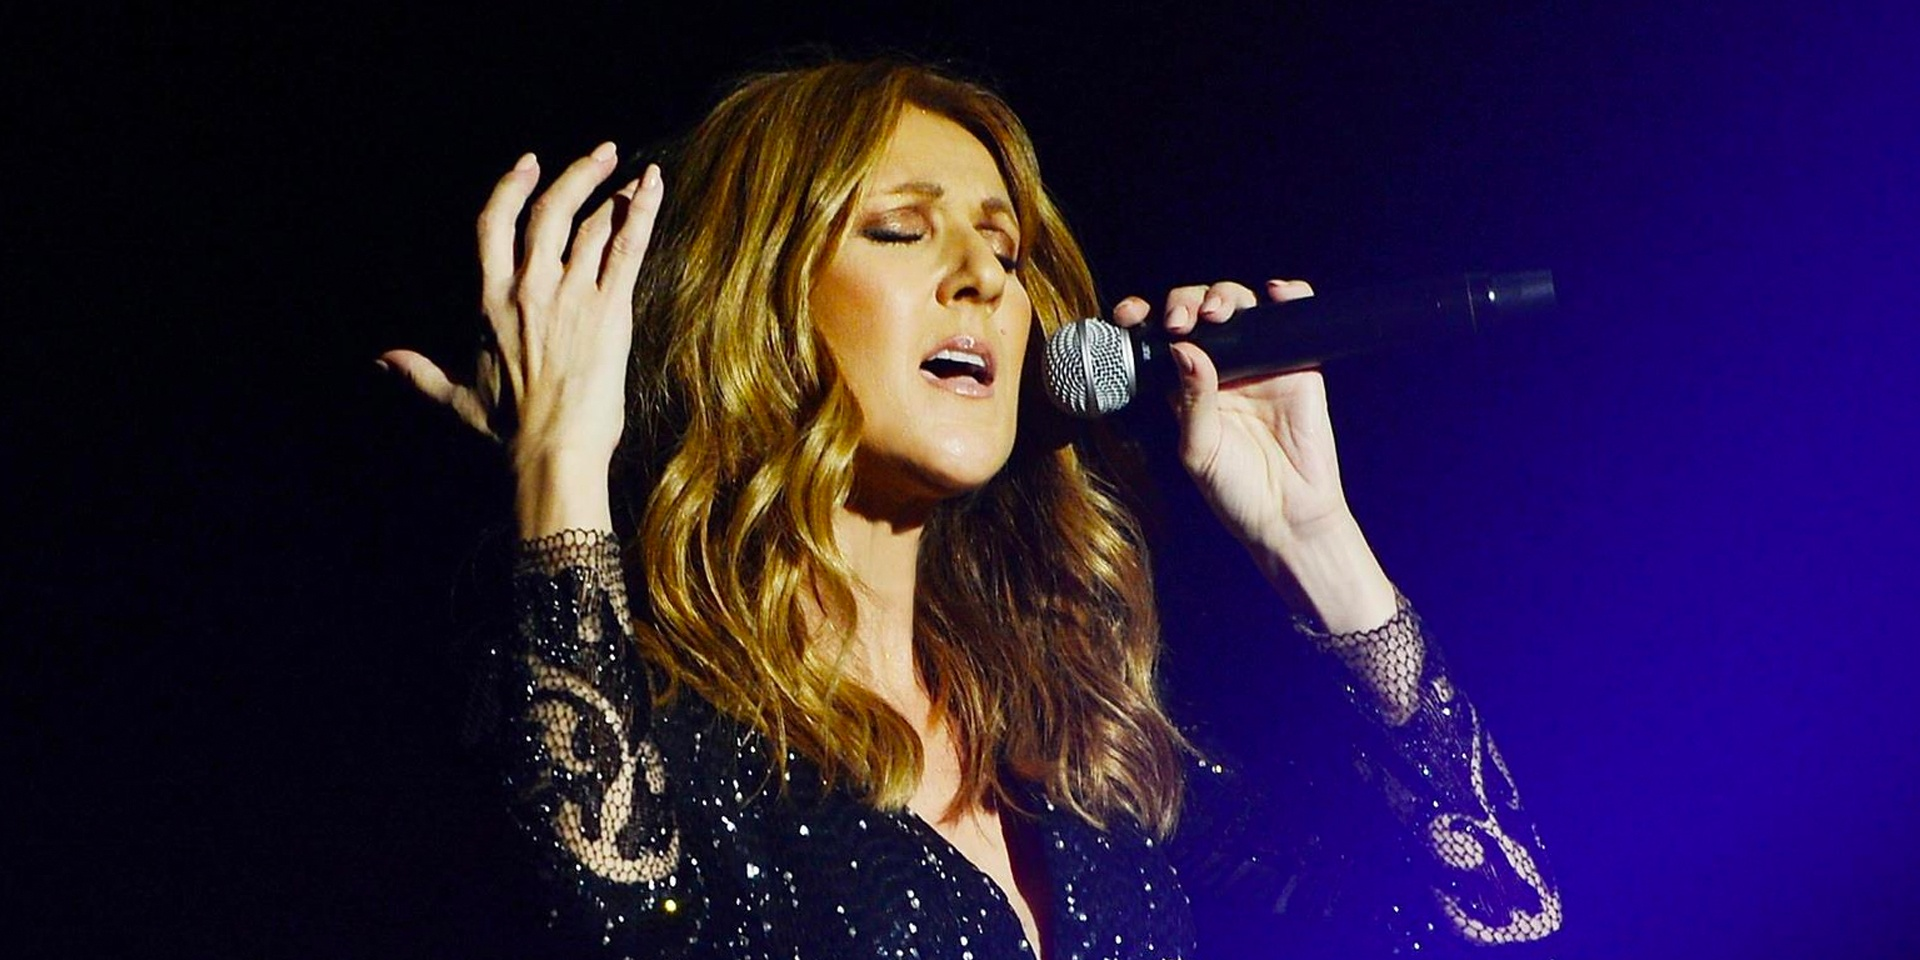 Both Céline Dion's concerts in Singapore are now sold out